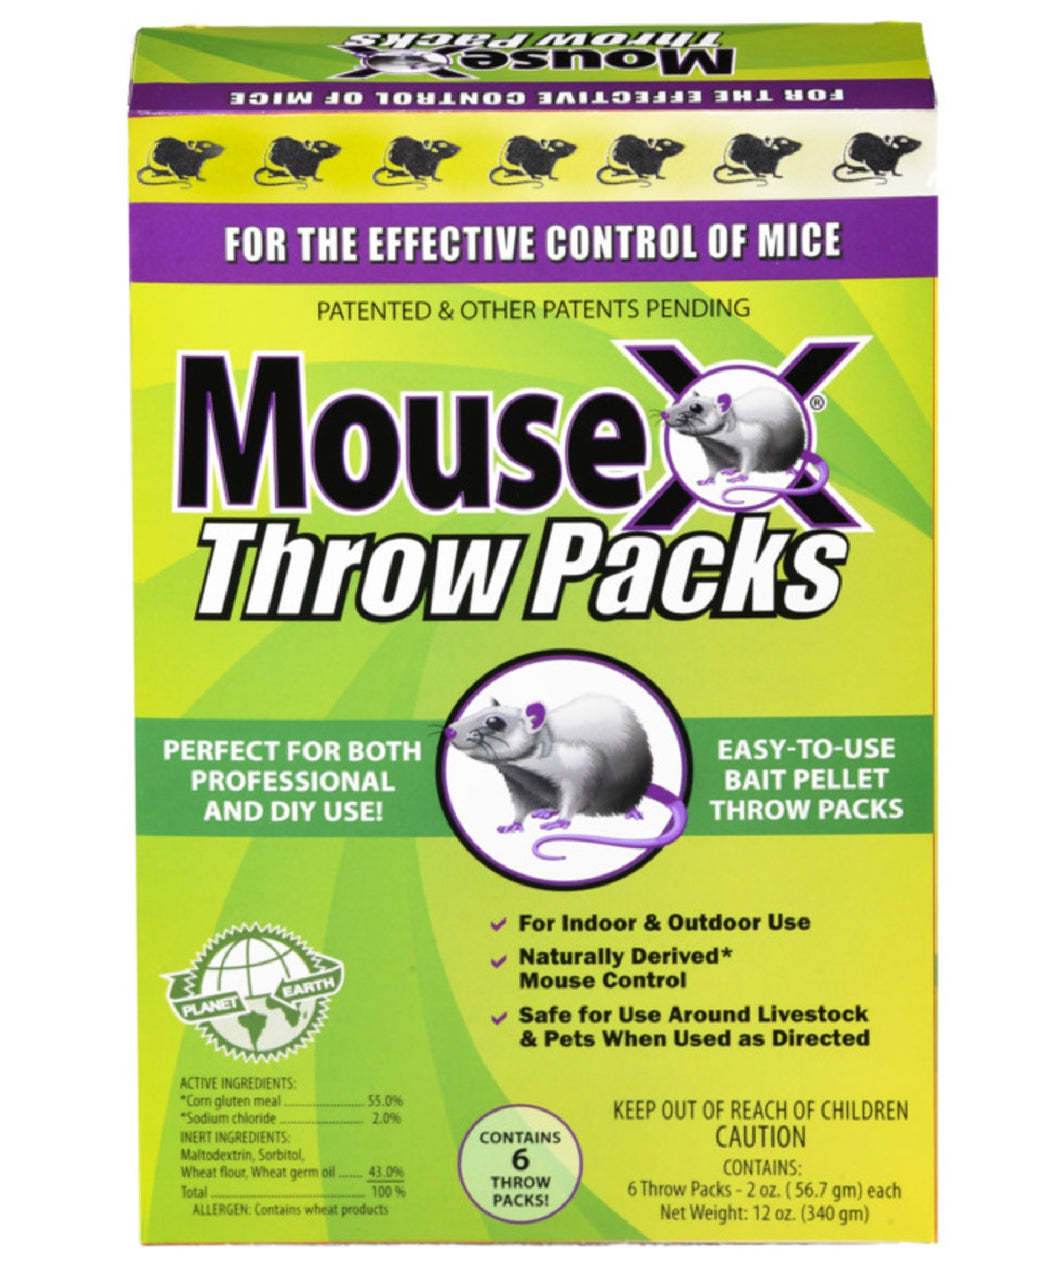 MouseX 620206 Throw Packs Bait Pellets For Mice, Pack Of 6